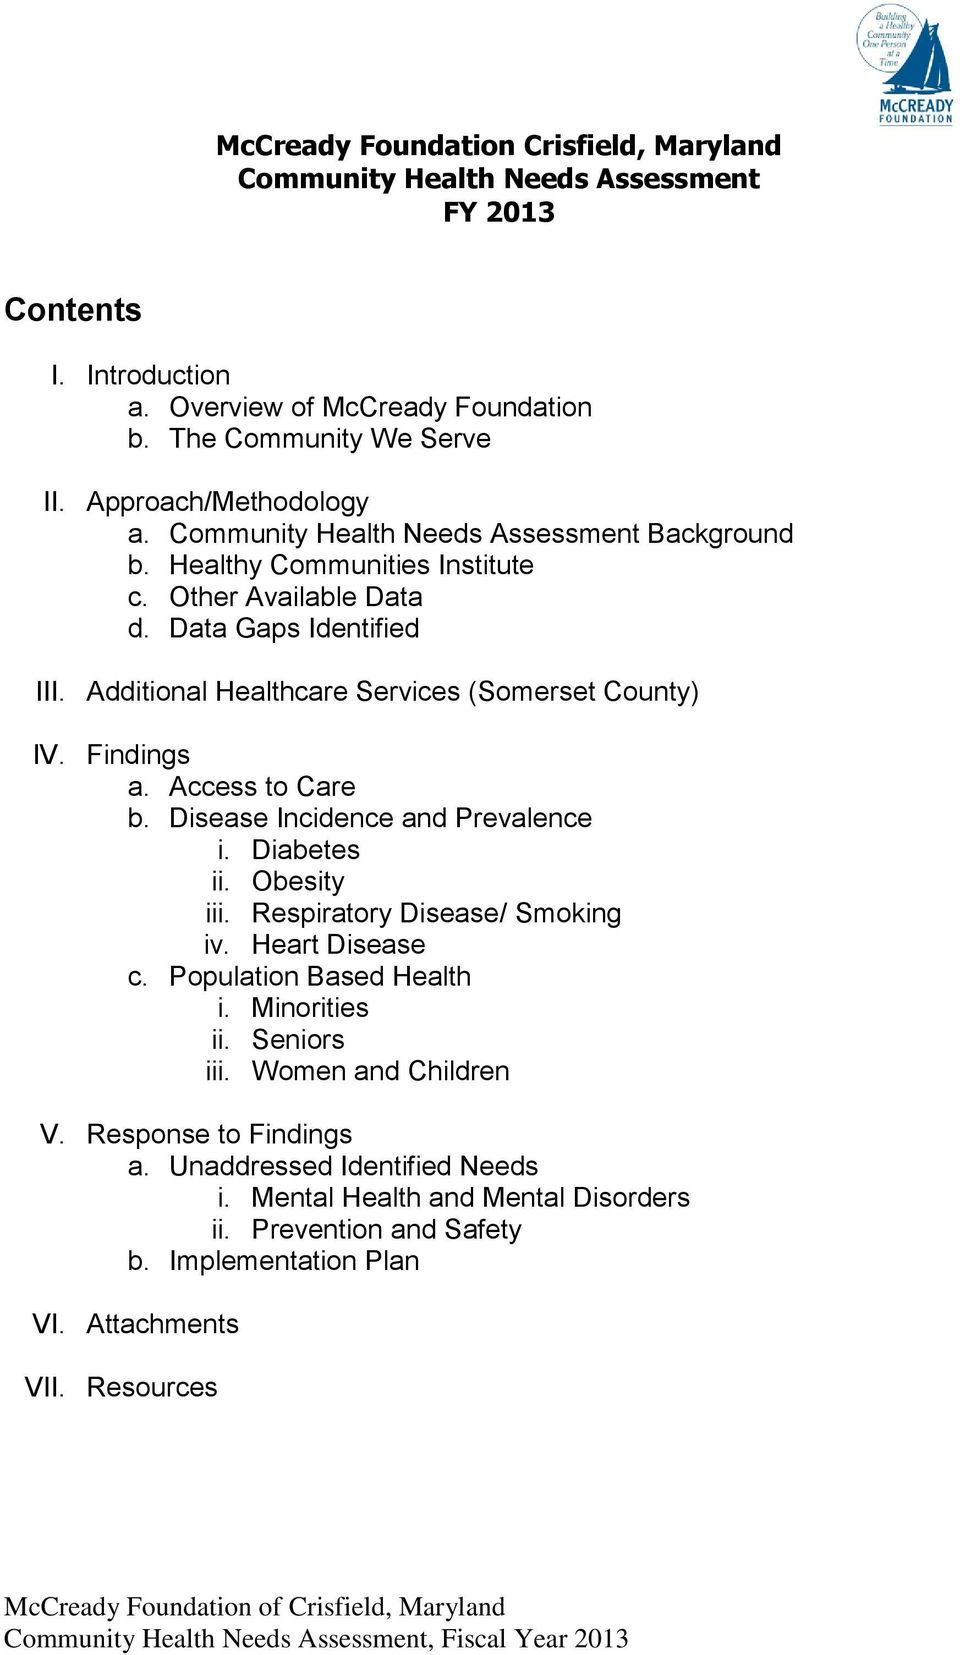 Additional Healthcare Services (Somerset County) IV. Findings a. Access to Care b. Disease Incidence and Prevalence i. Diabetes ii. Obesity iii. Respiratory Disease/ Smoking iv.